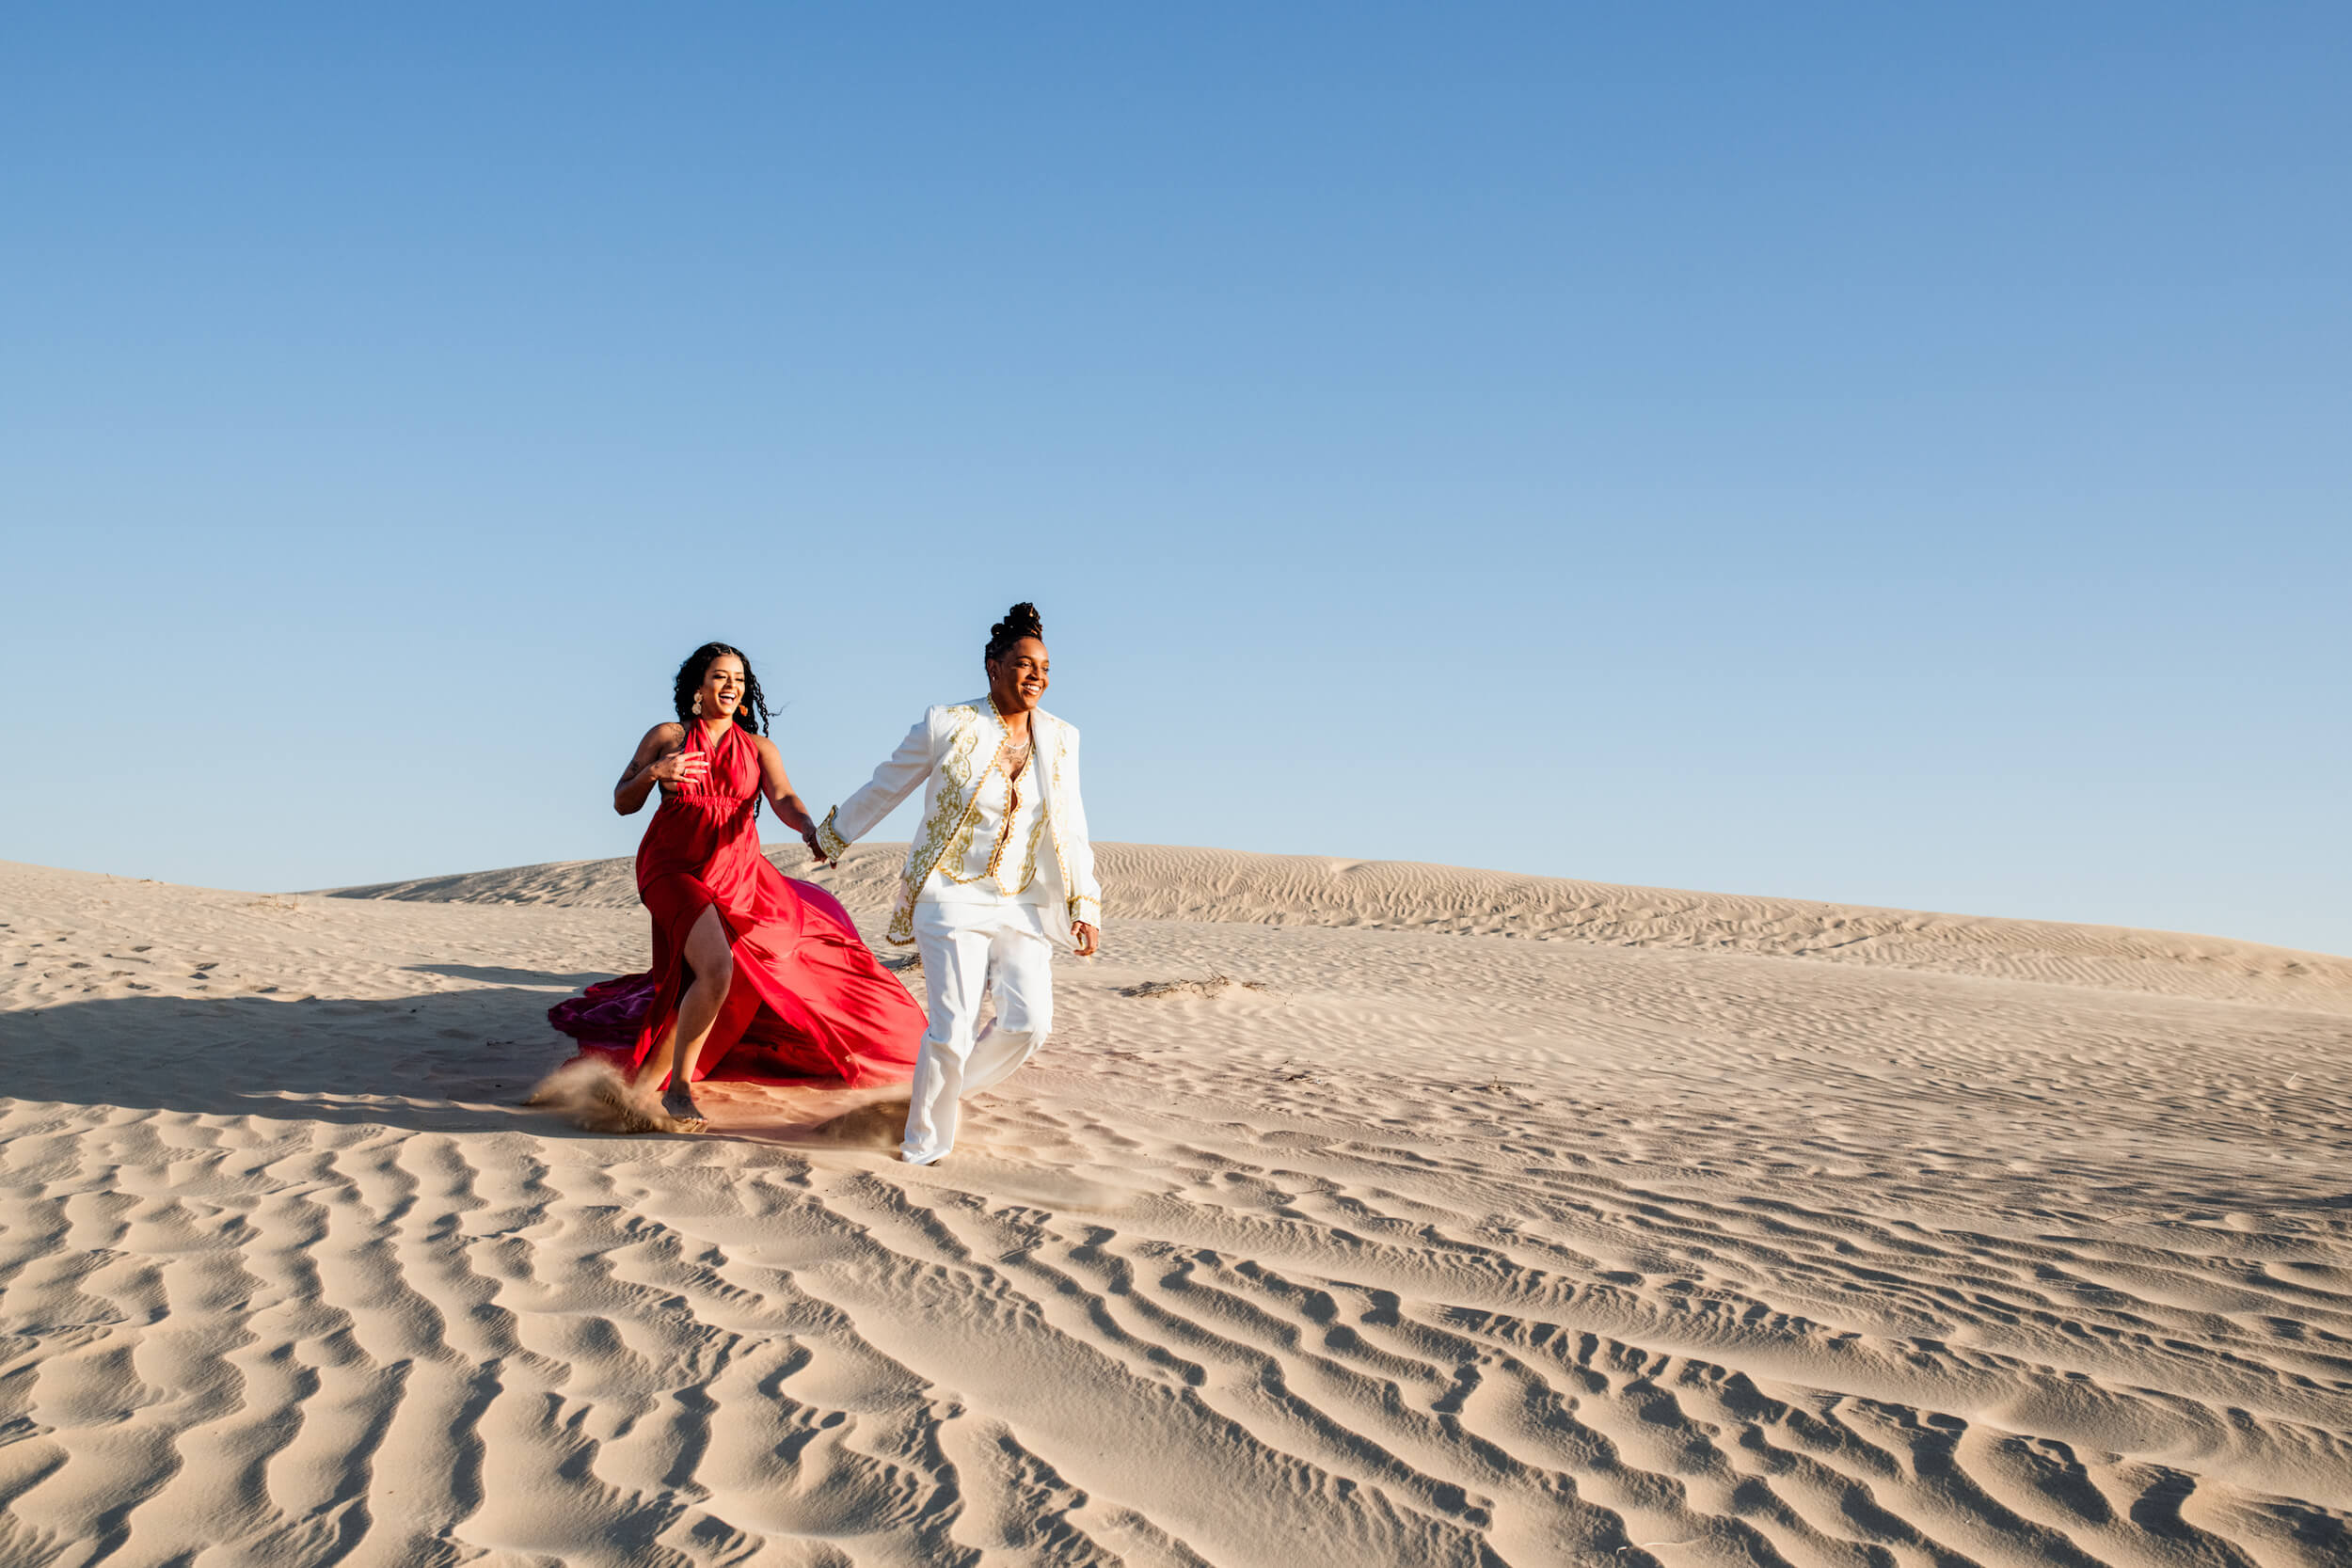 A Lesbian couple hold hands and laughing while running across the sand dunes in Dubai, UAE.